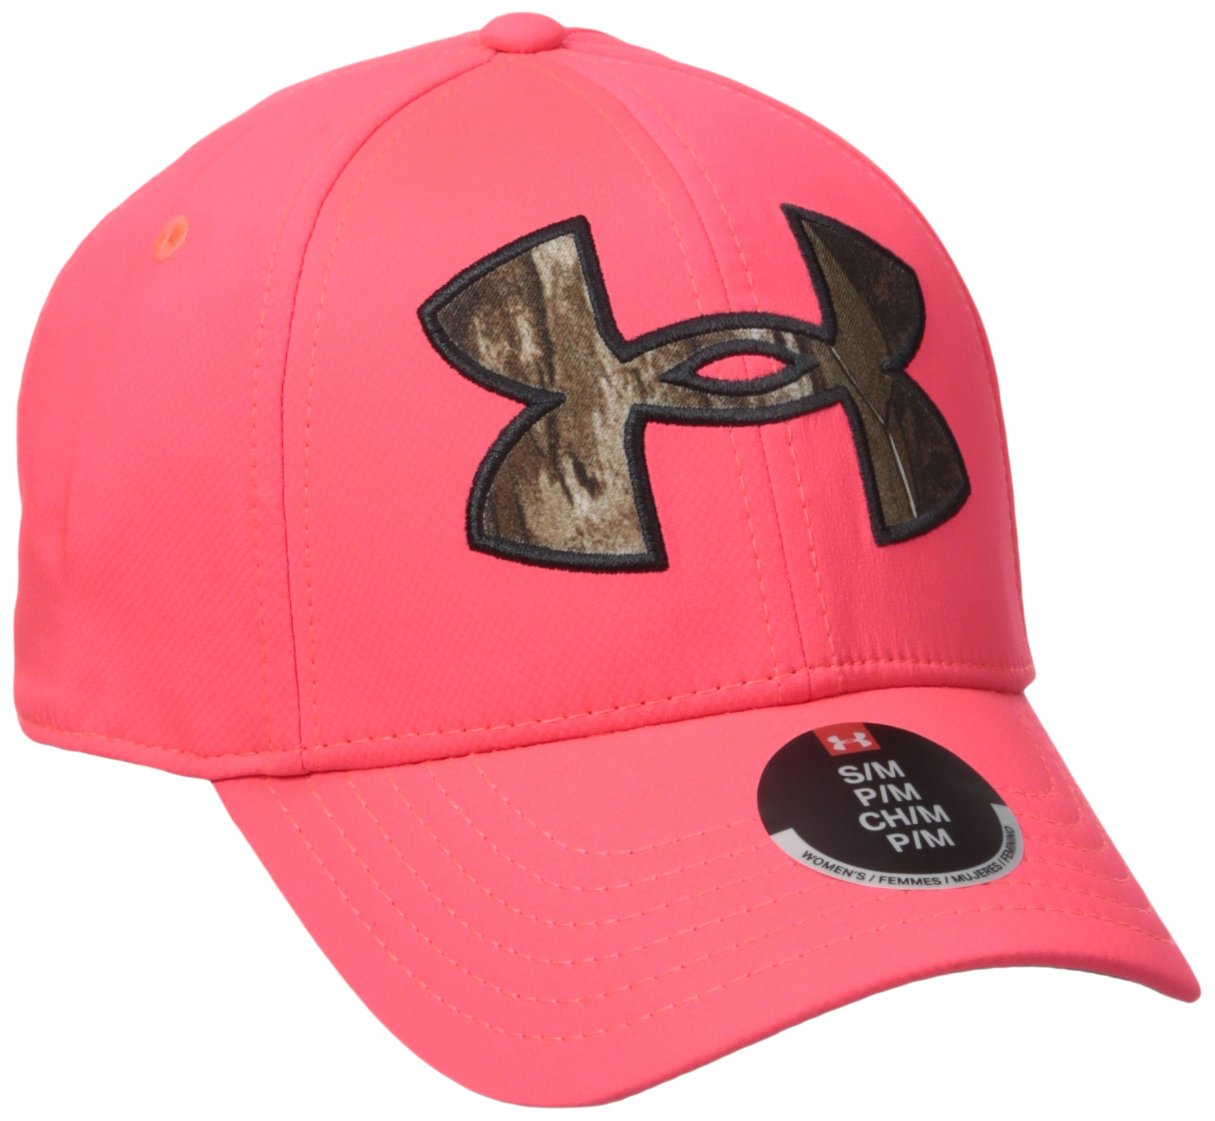 size 40 ebd2a dff4f Galleon - Under Armour Women s Caliber 2.0 Cap, Pink Chroma Realtree  Ap-Xtra, Small Medium